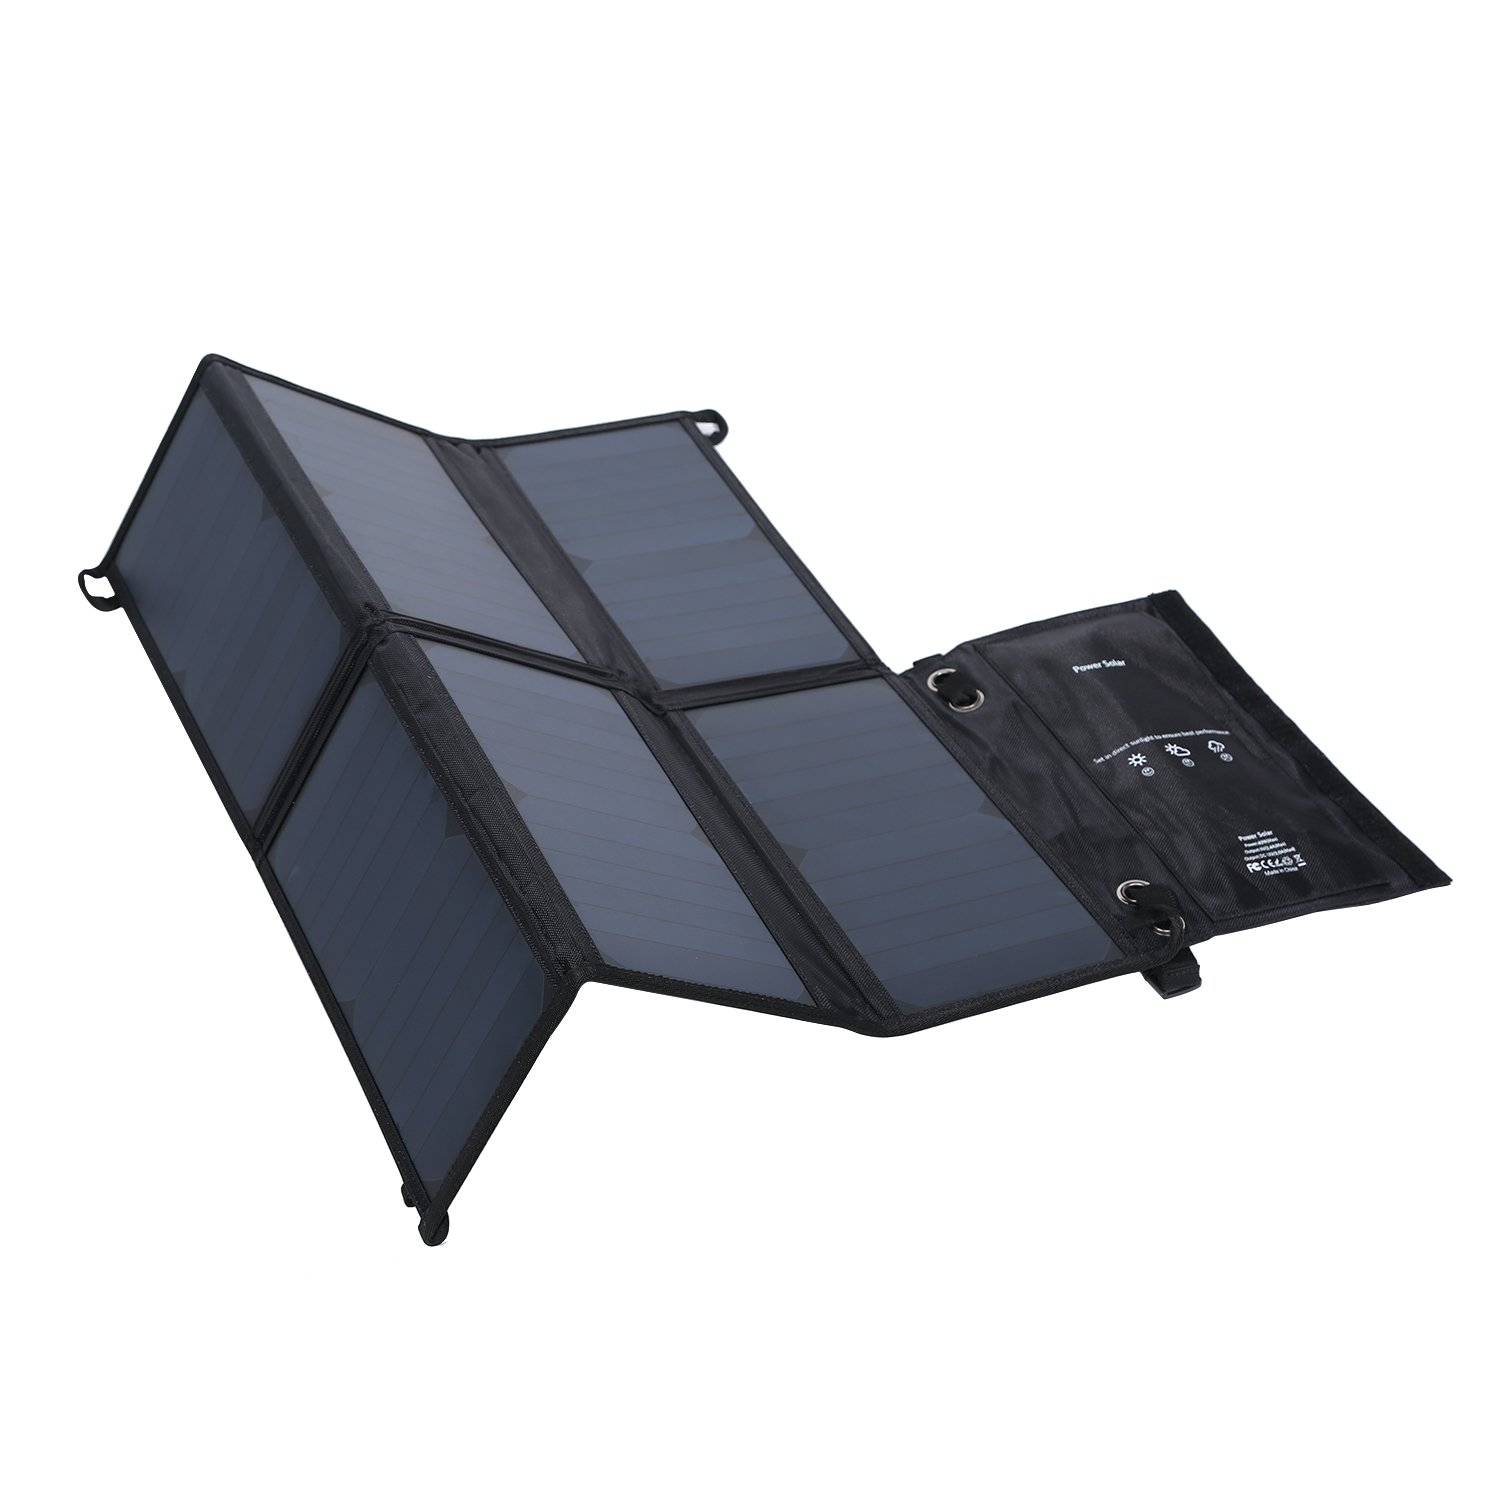 LESHP Highest Efficient Solar Charger 40W Foldable Sunpower Solar Panel Charger Dual Output (5V USB + 12V DC) For StorageBattery, iPhone, iPad, Android Smart Phone by LESHP (Image #1)